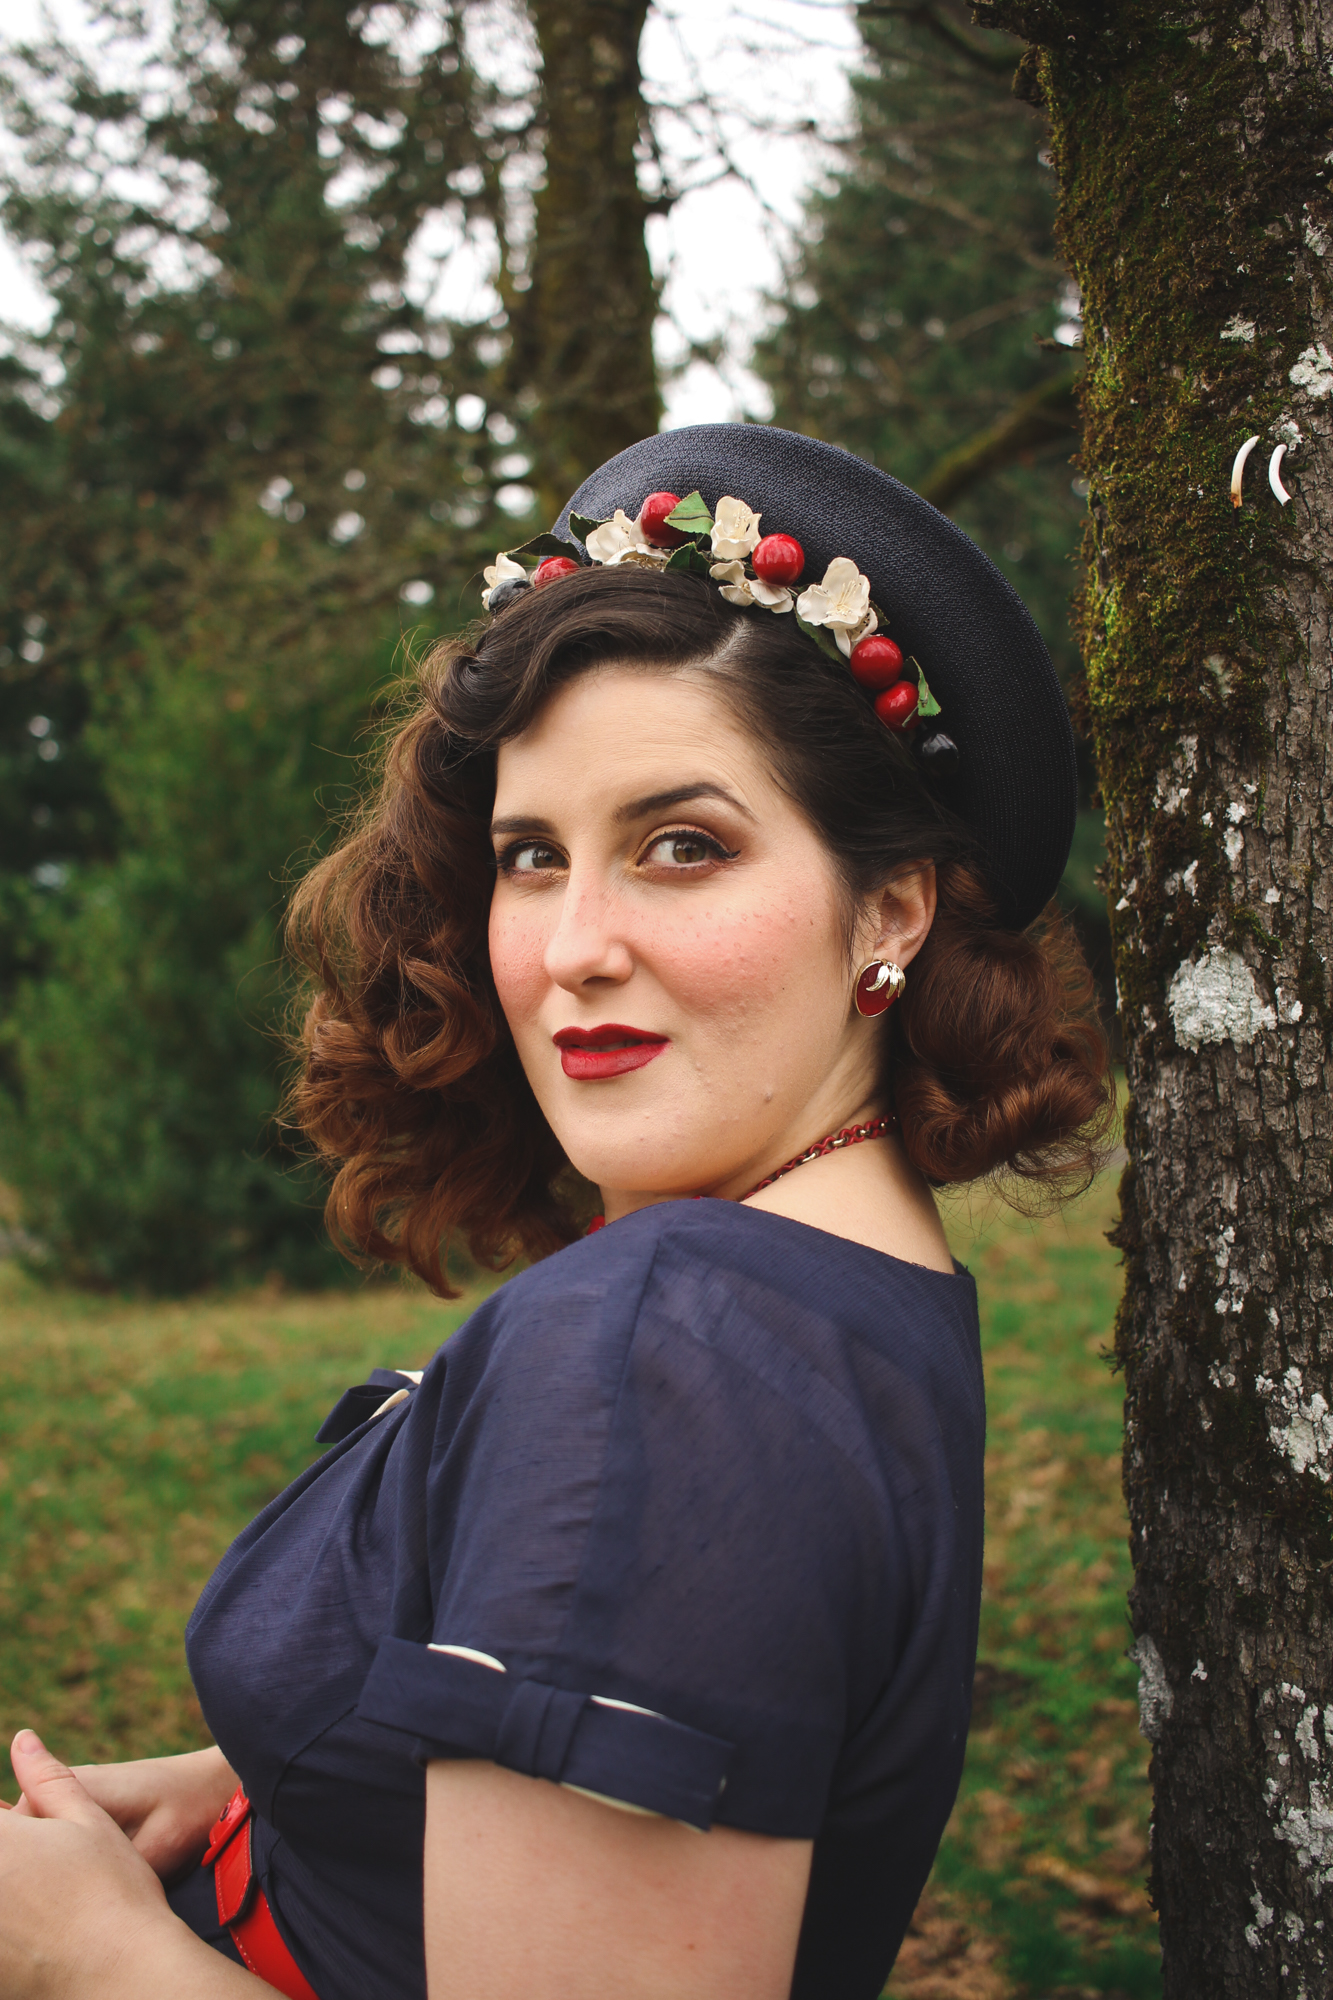 1940's hairstyle with a vintage hat